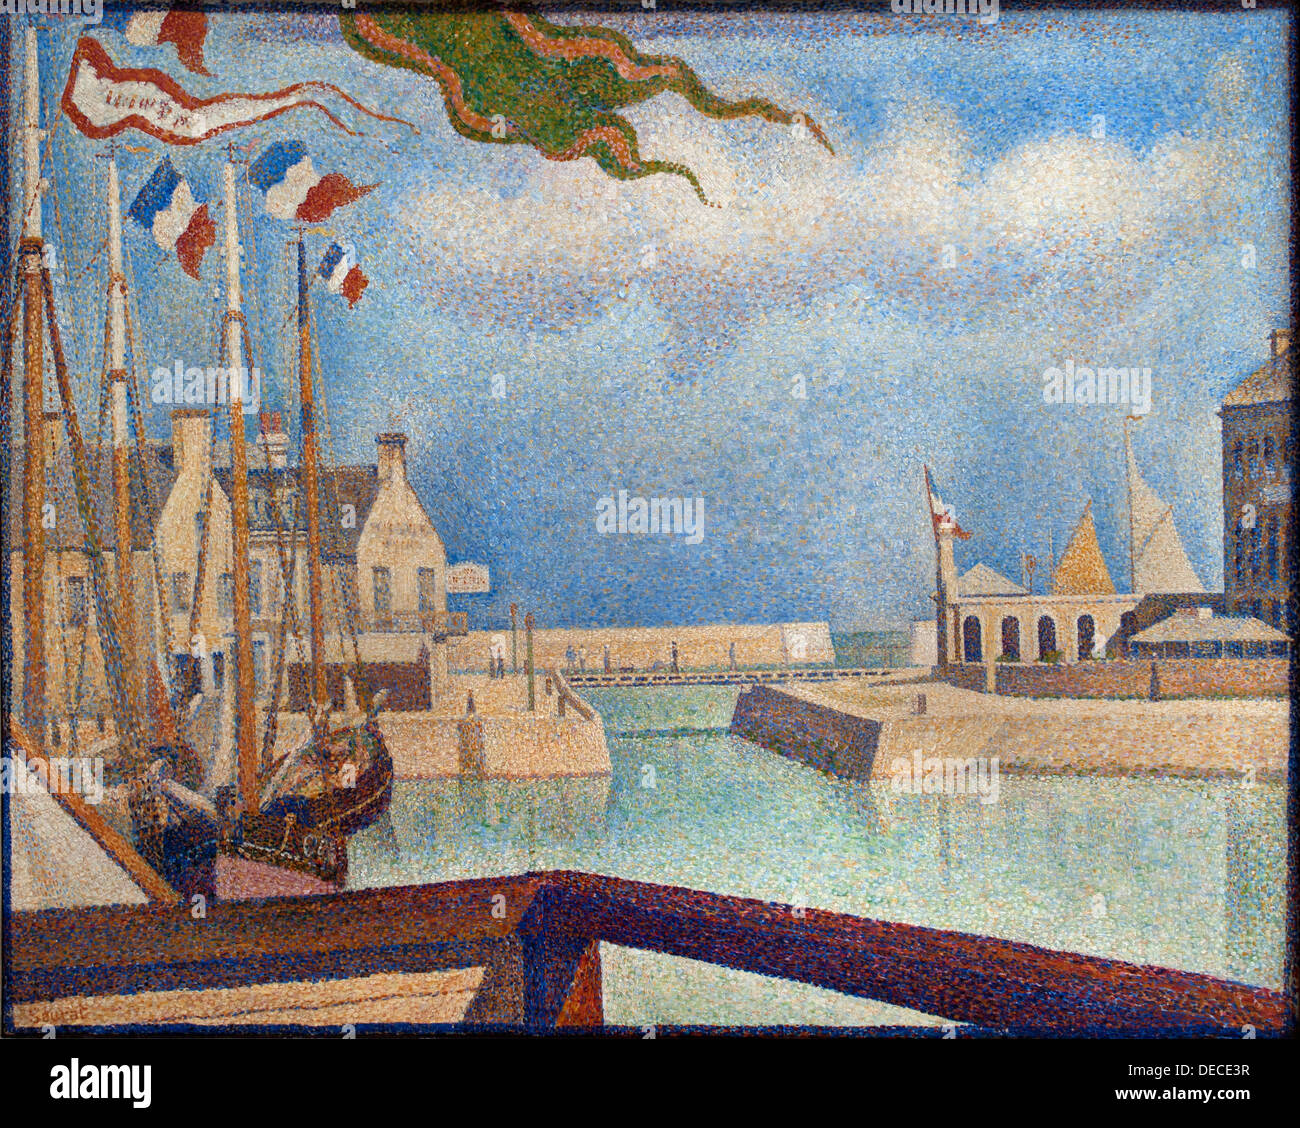 Sunday at Pert en Bessin 1888 Georges Seurat 1859 - 1891  France French - Stock Image